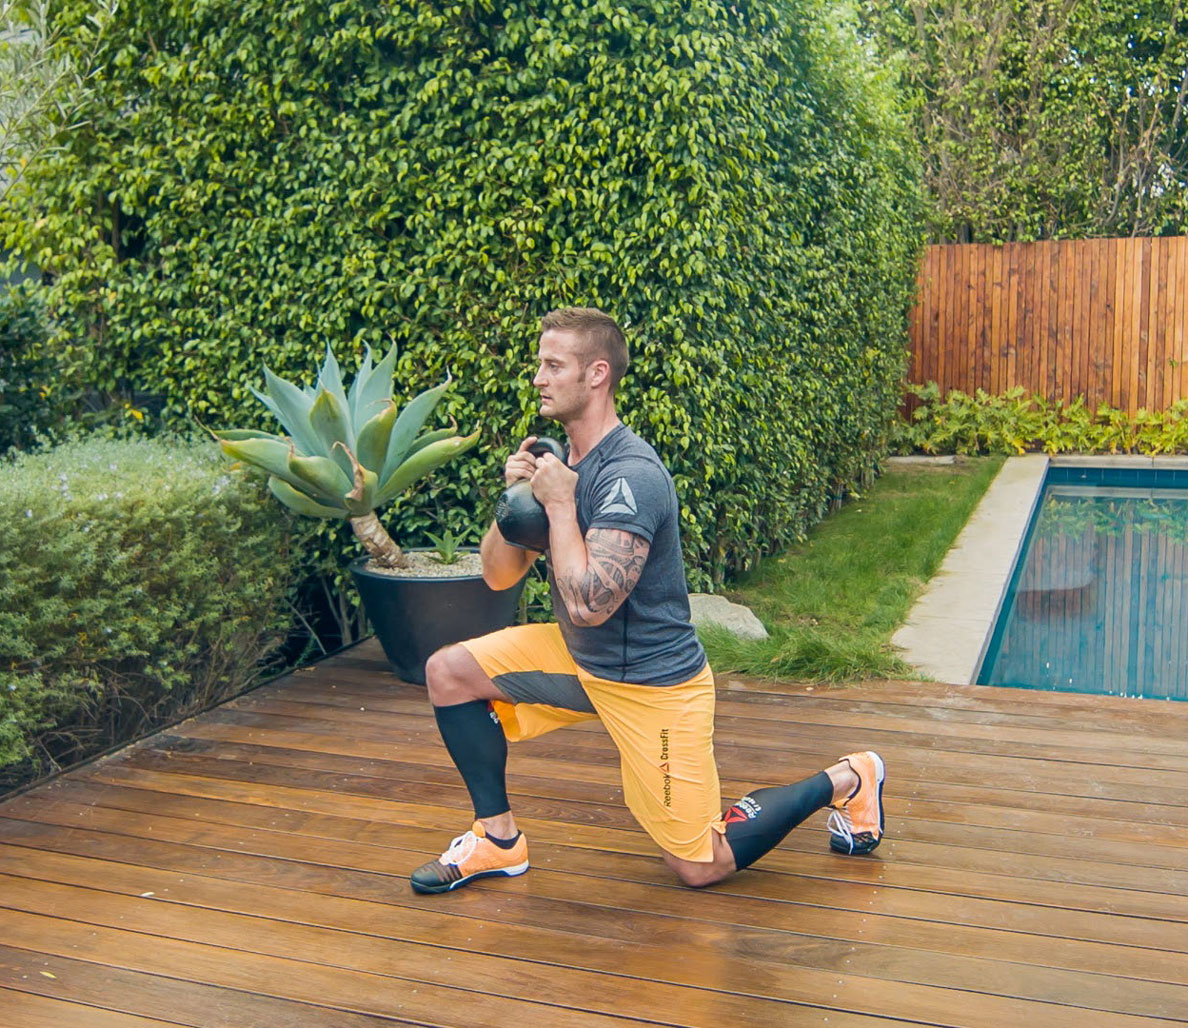 Weekend One-Up: Squat Jumps, Situps, and Swings